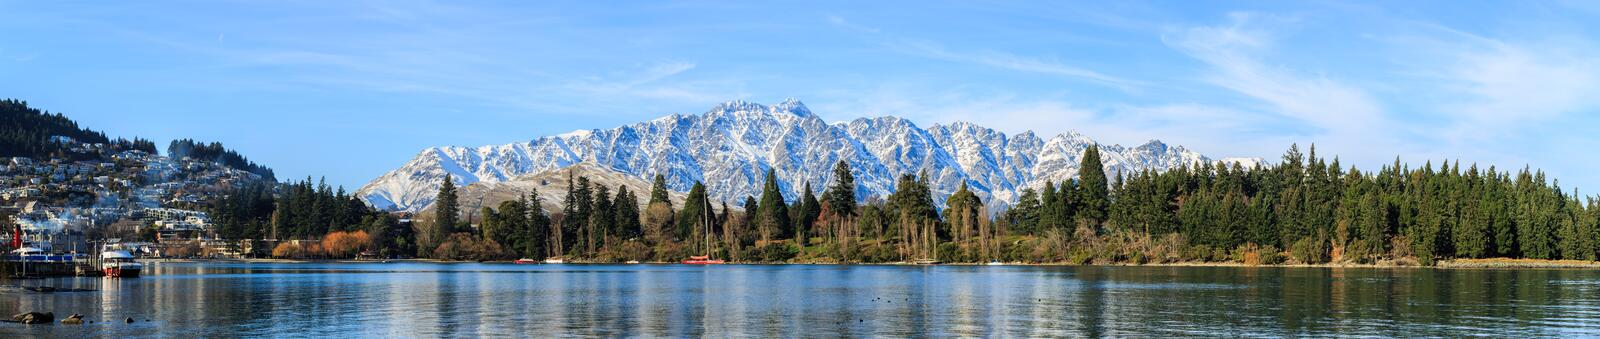 Vue panoramique de Queenstown photo stock